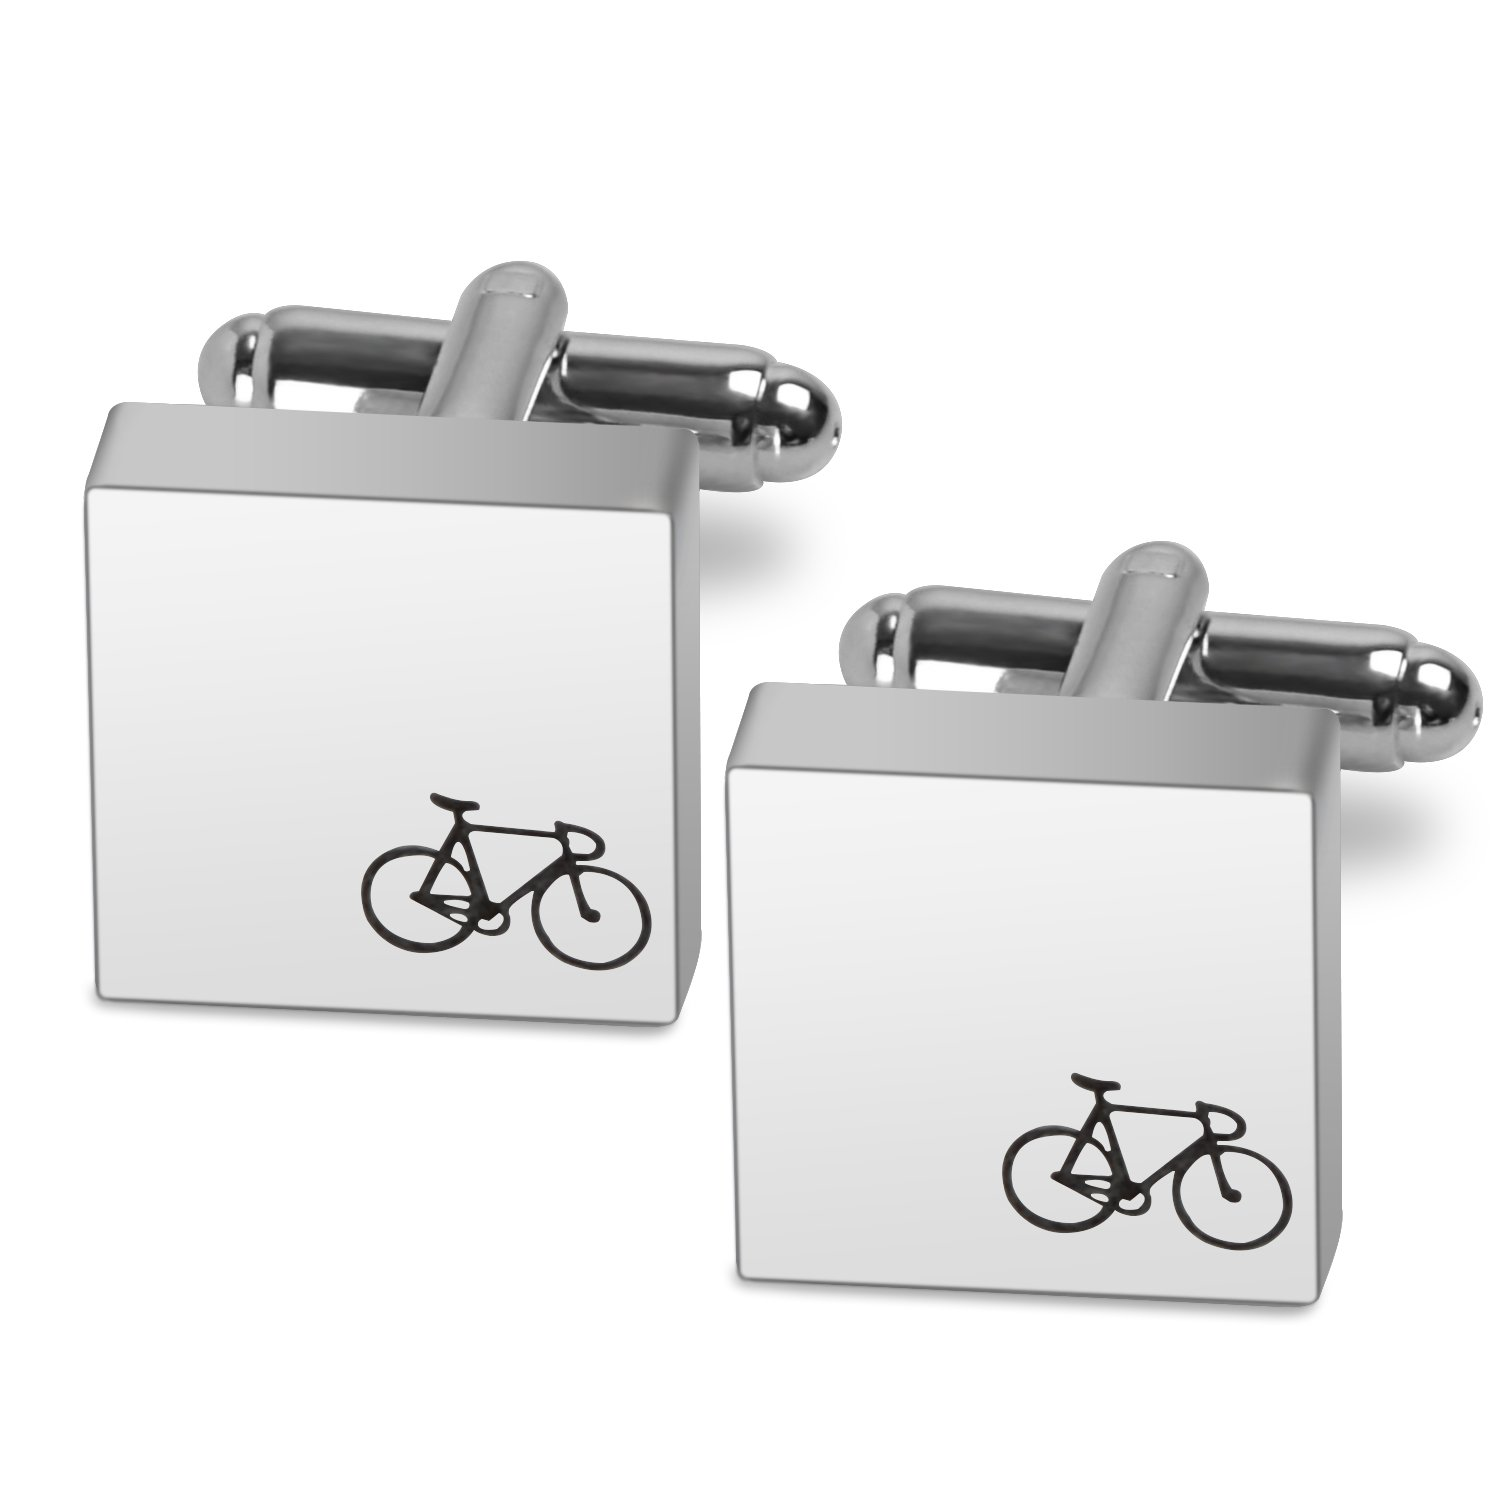 Memories Coding Bike Cufflinks for Men Simple Style Personalized Cuff Links Business Classic Wedding Engraved Cufflinks Gift for Boyfriend Father Husband (Bike)